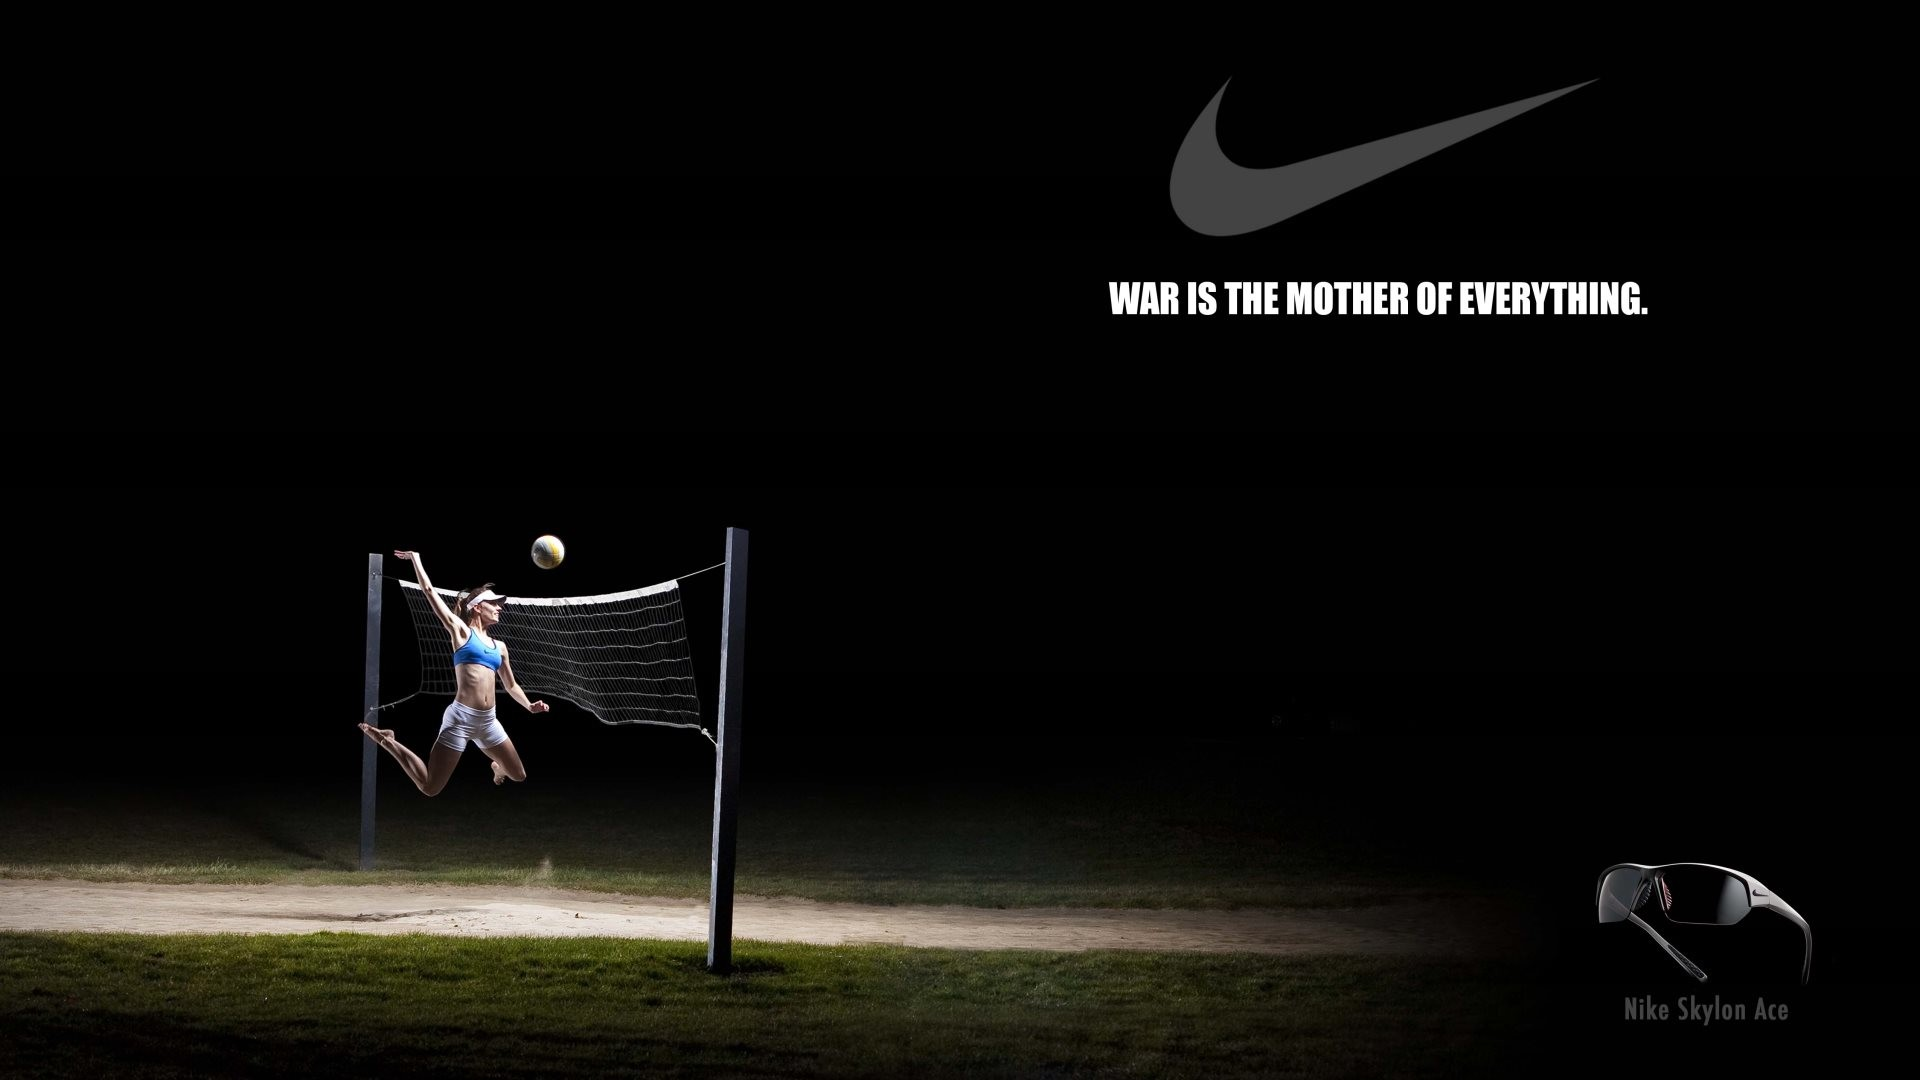 1920x1080 4K HD Wallpaper: Nike Creative Volleyball Poster